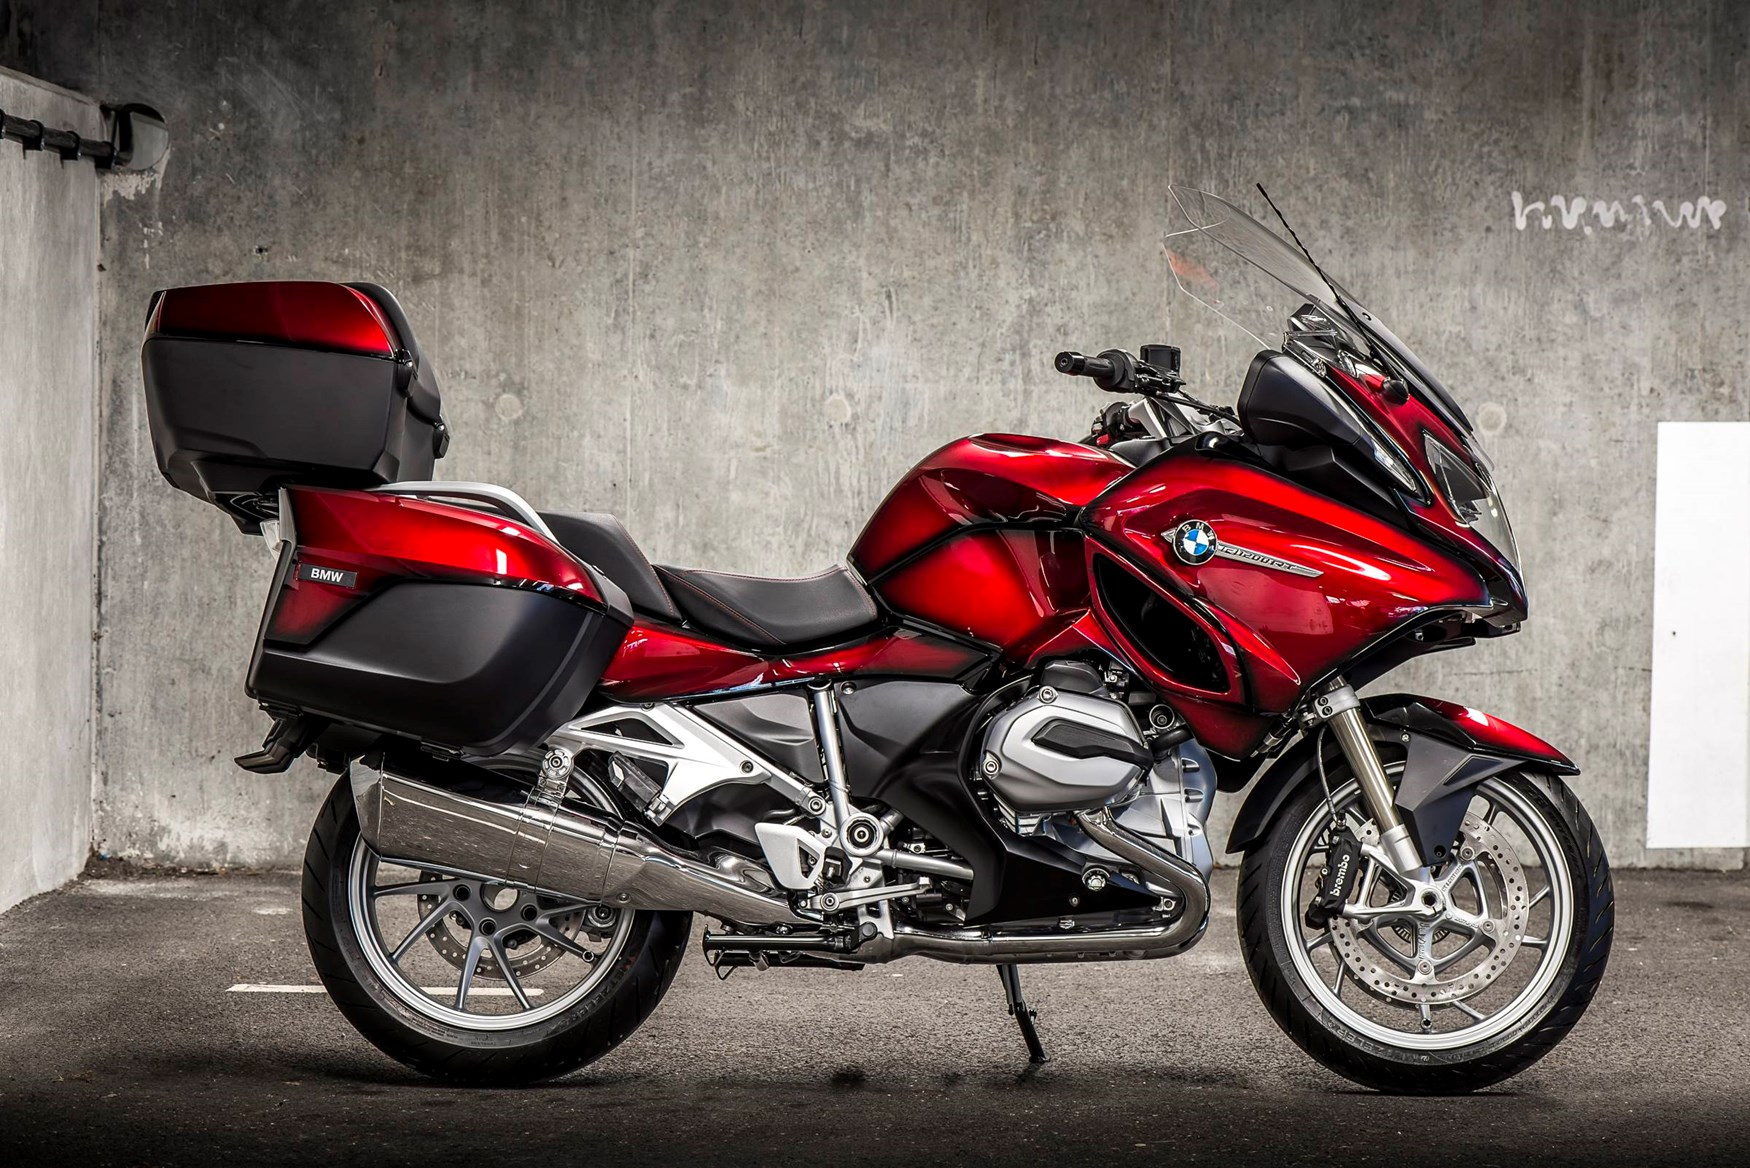 2017 R1200rt Color Bmw Luxury Touring Community